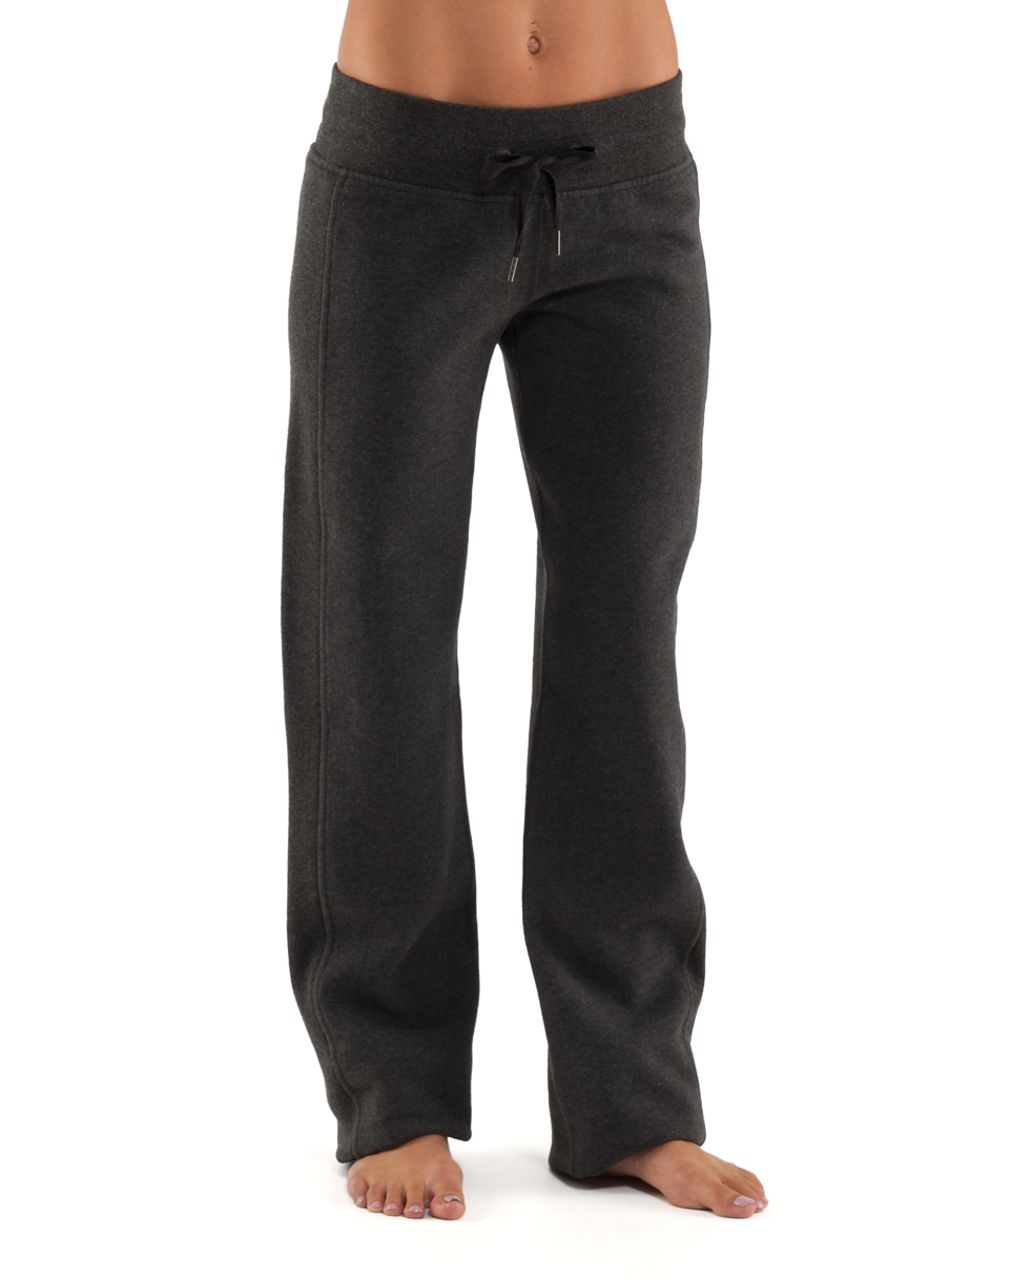 Lululemon Cuddle Up Pant II - Heathered Deep Coal